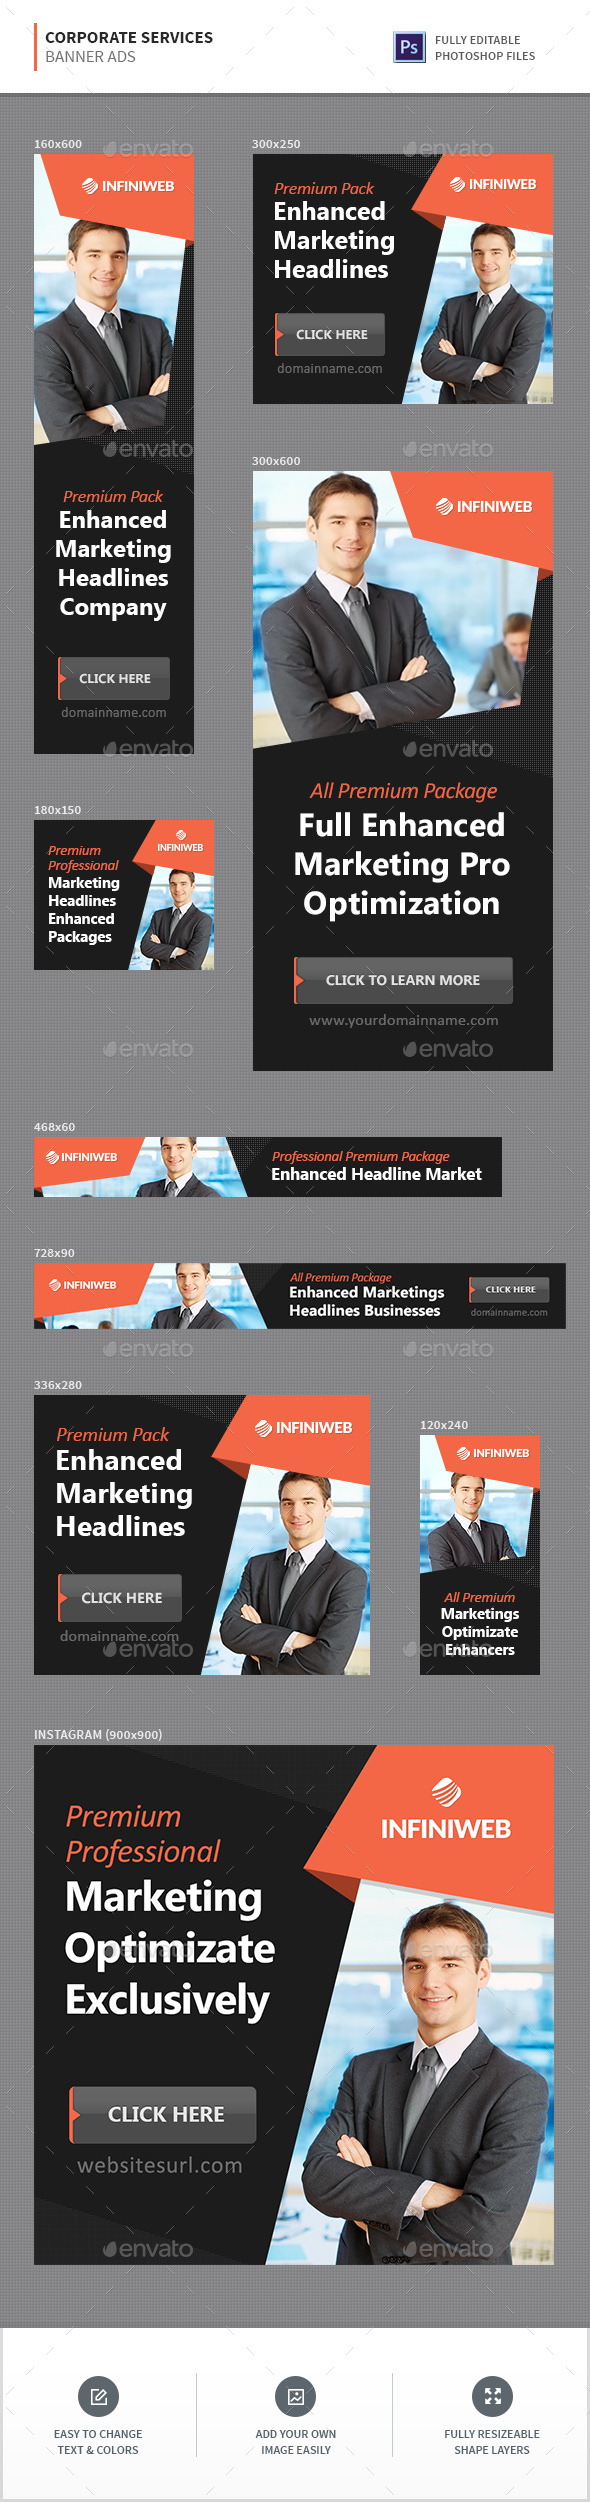 Corporate Services Banners - Banners & Ads Web Elements